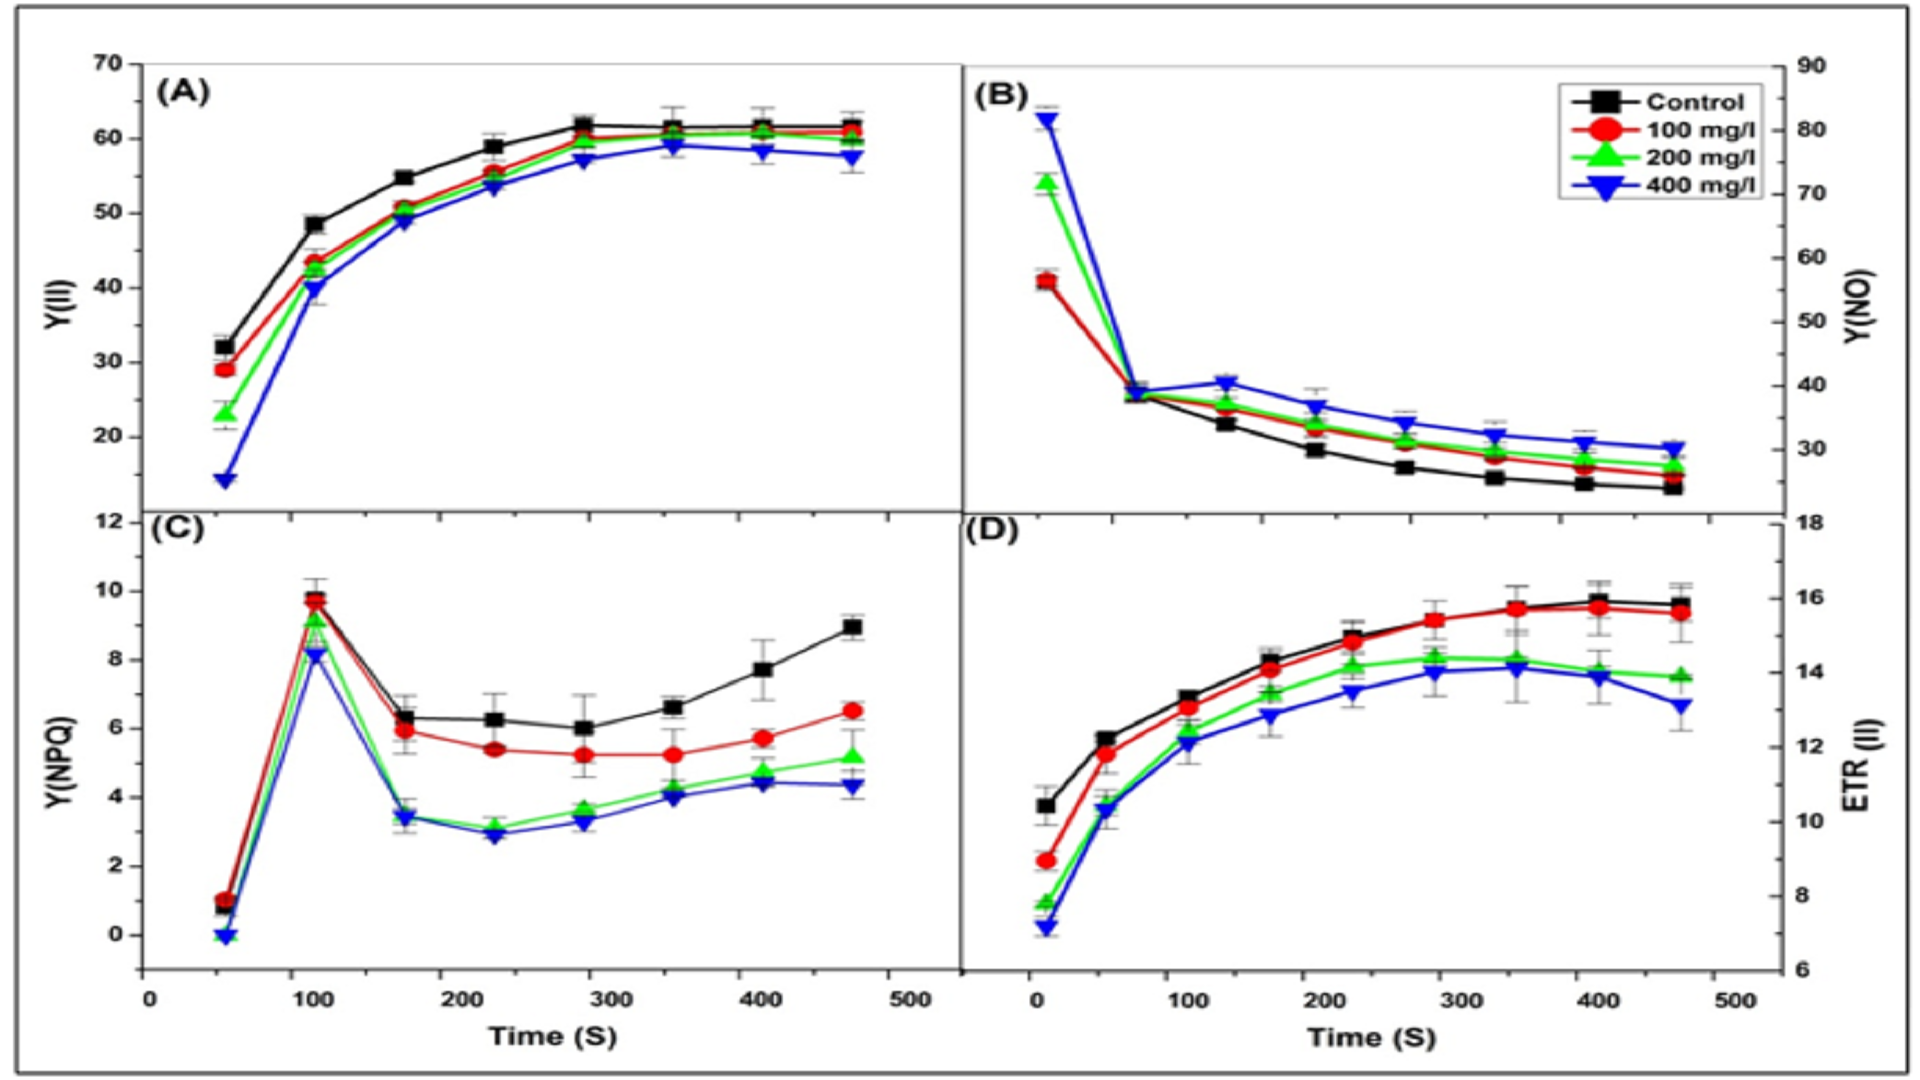 Cyclic Electron Flow Plays an Important Role in Protecting PSI against Fluoride Stress in Maize Plant